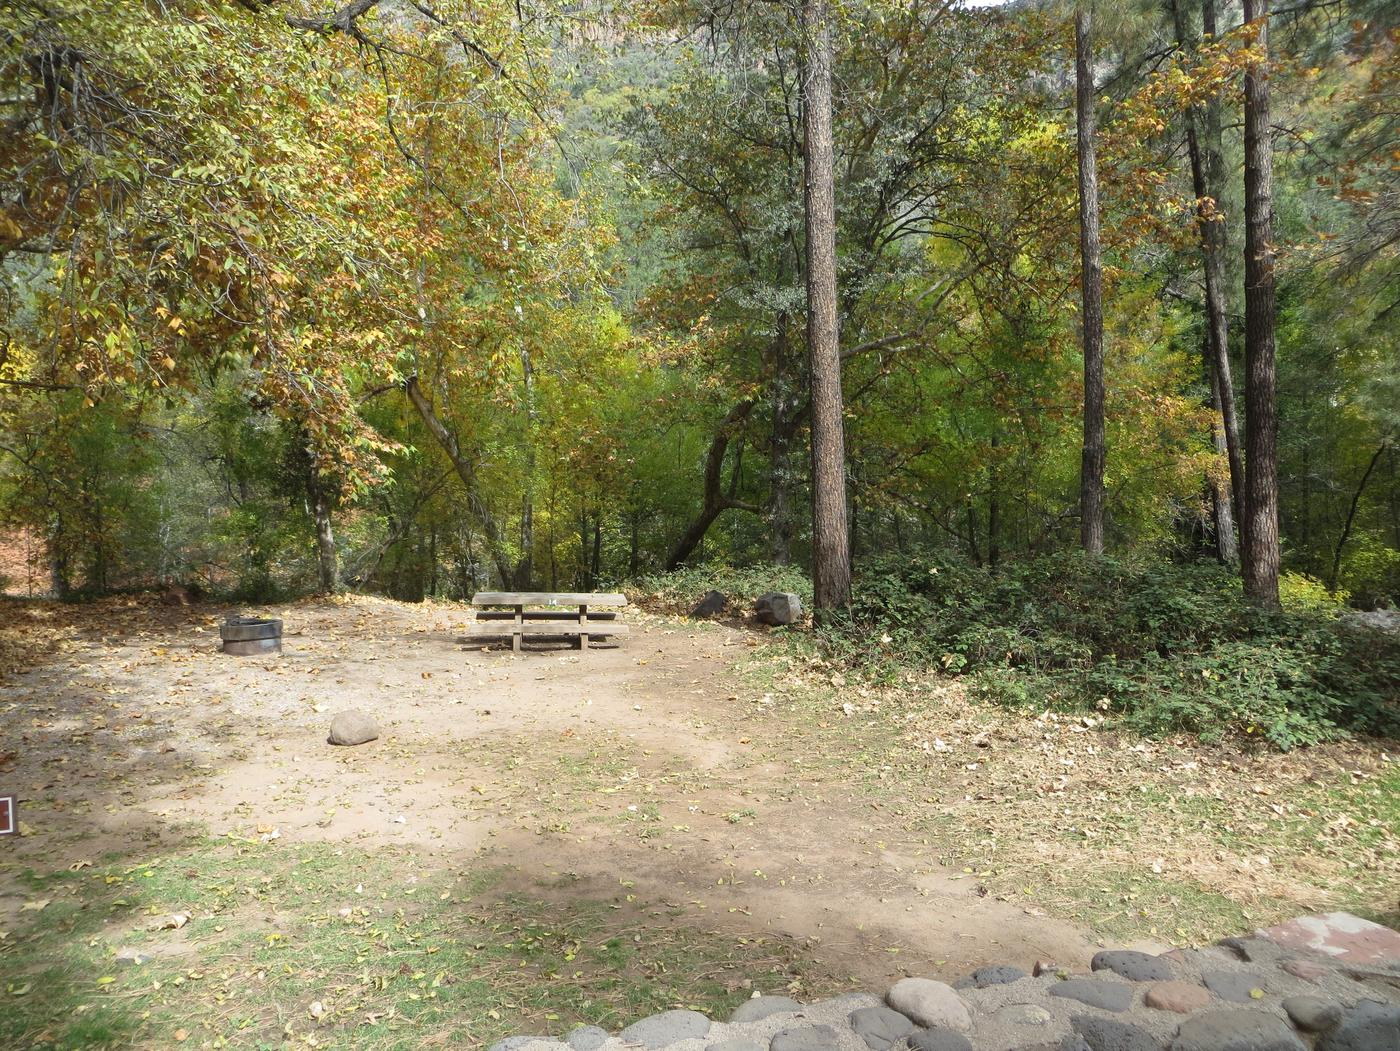 Manzanita Campground site #14 featuring the treed picnic area, camping space, and fire pit.